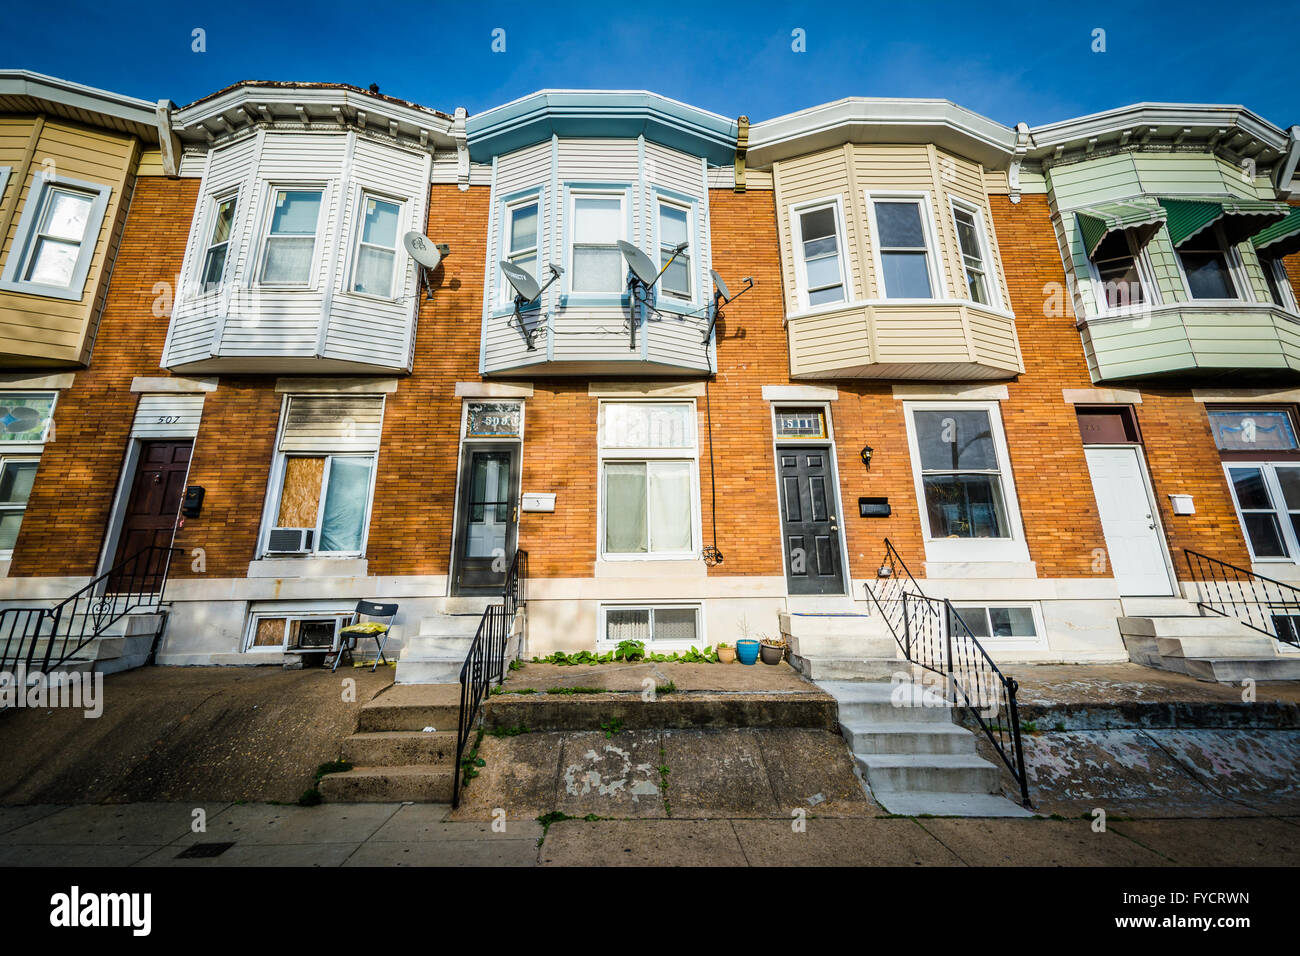 Row Houses In Baltimore Md : Row houses in greektown baltimore maryland stock photo